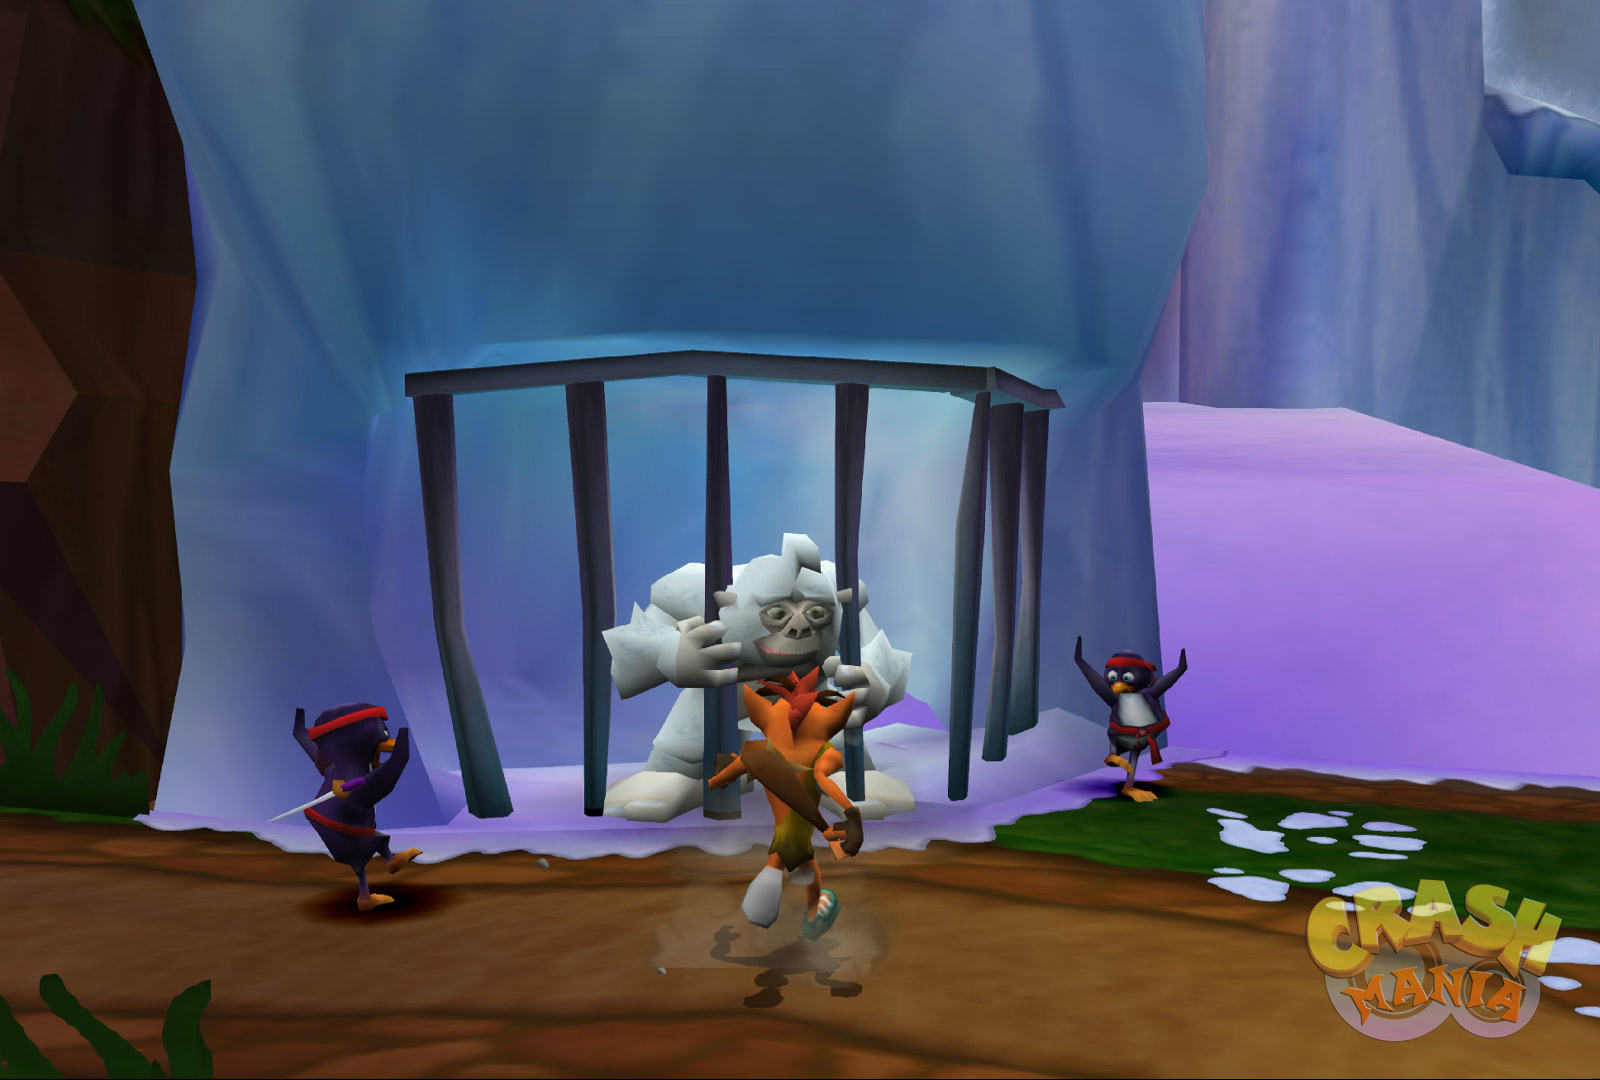 Crash runs up to a yeti who is being held prisioner in a cage. There are two penguins dressed as ninjas beside Crash.